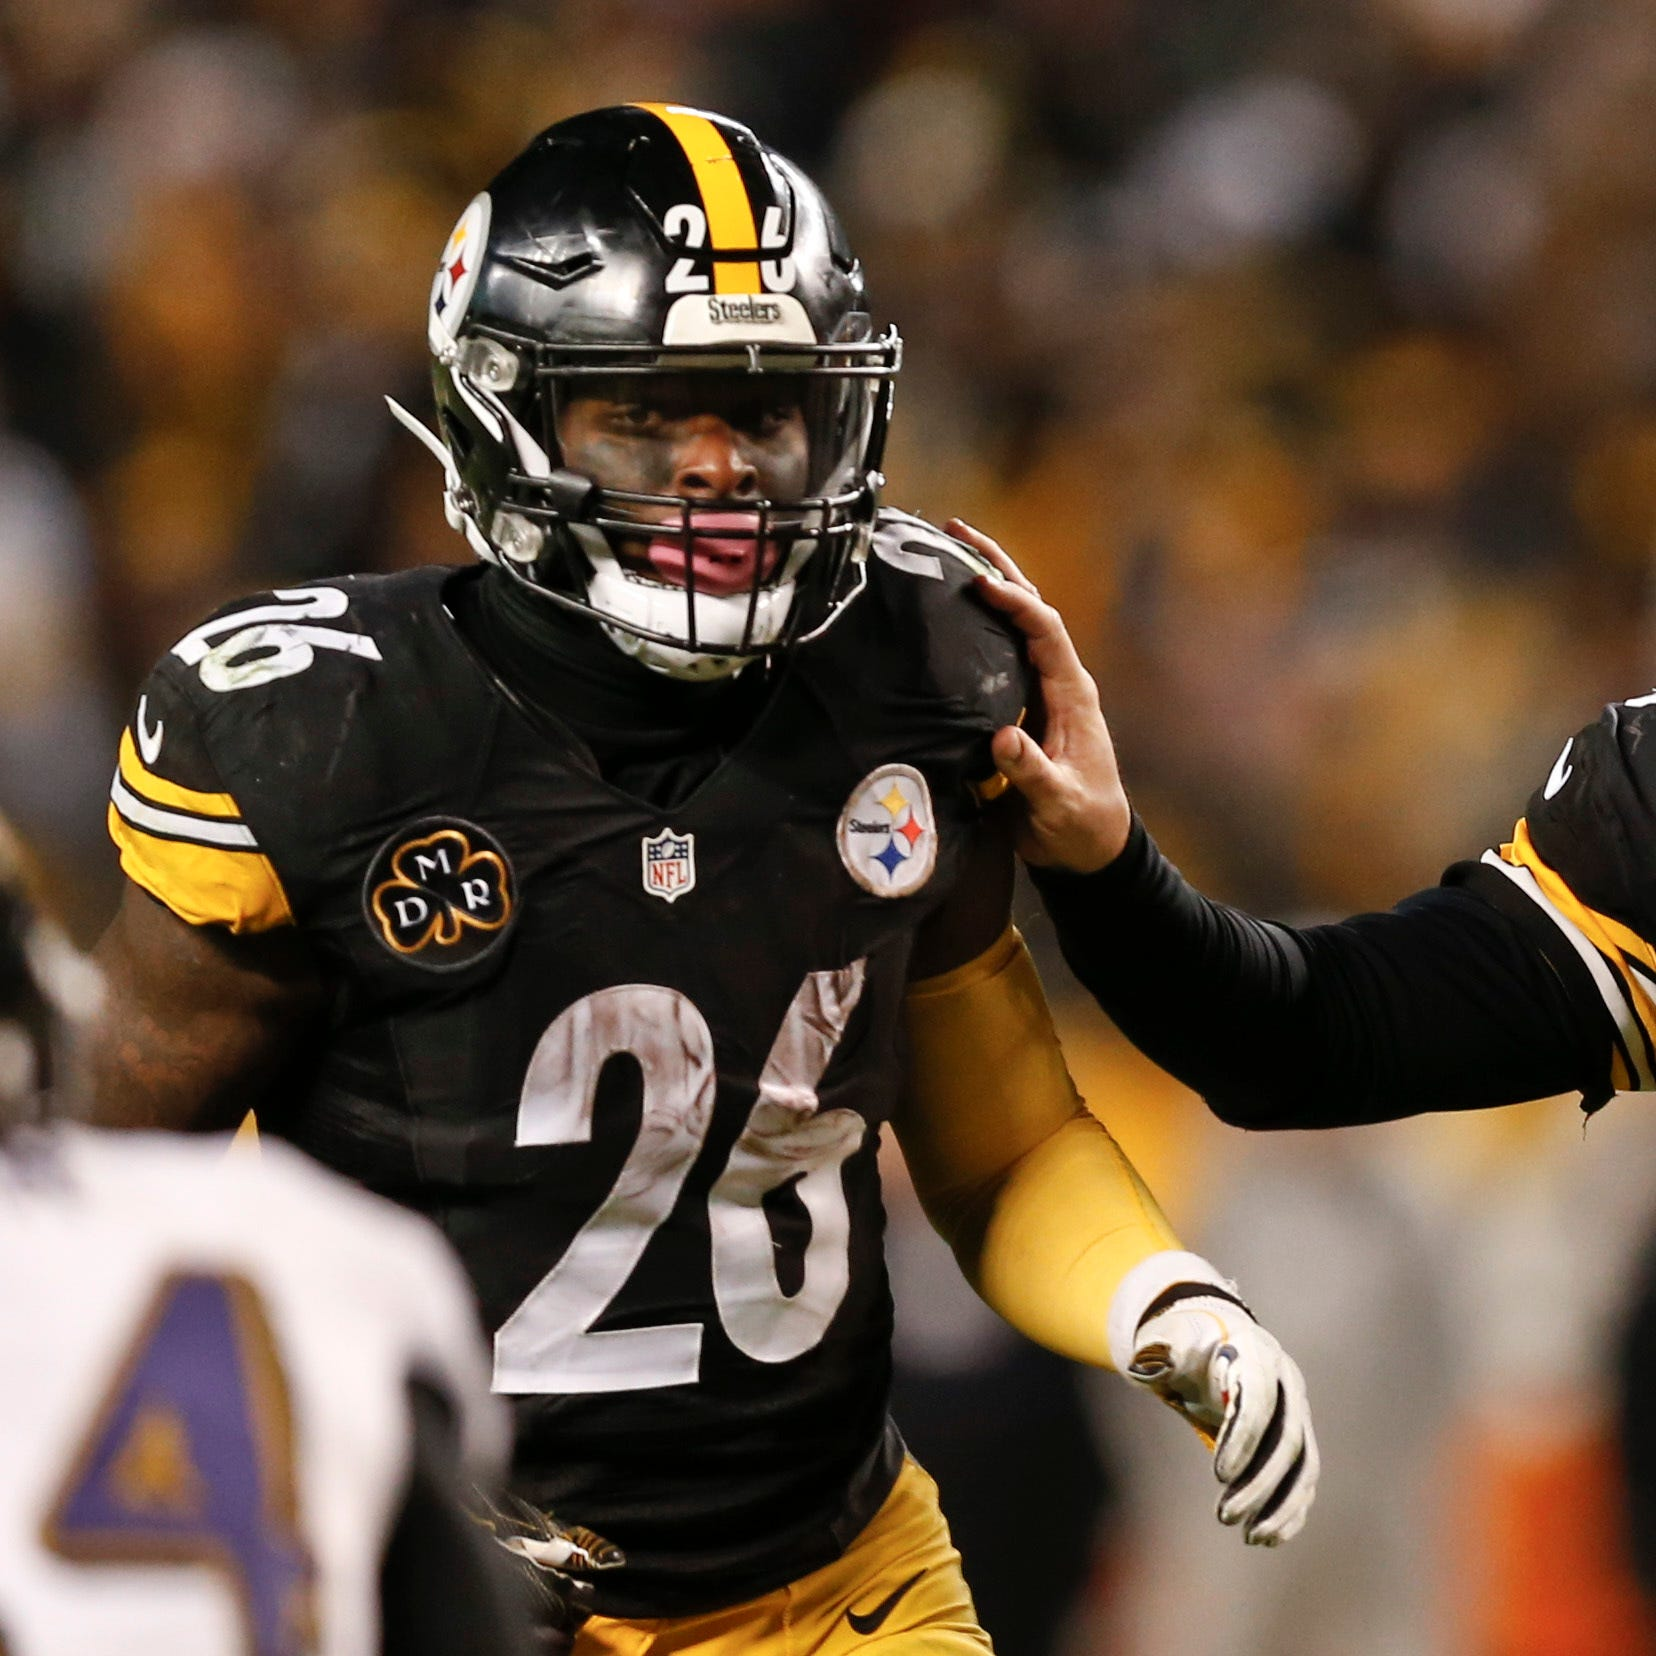 Thursday's NFL: Browns won't miss Steelers' Le'Veon Bell in opener